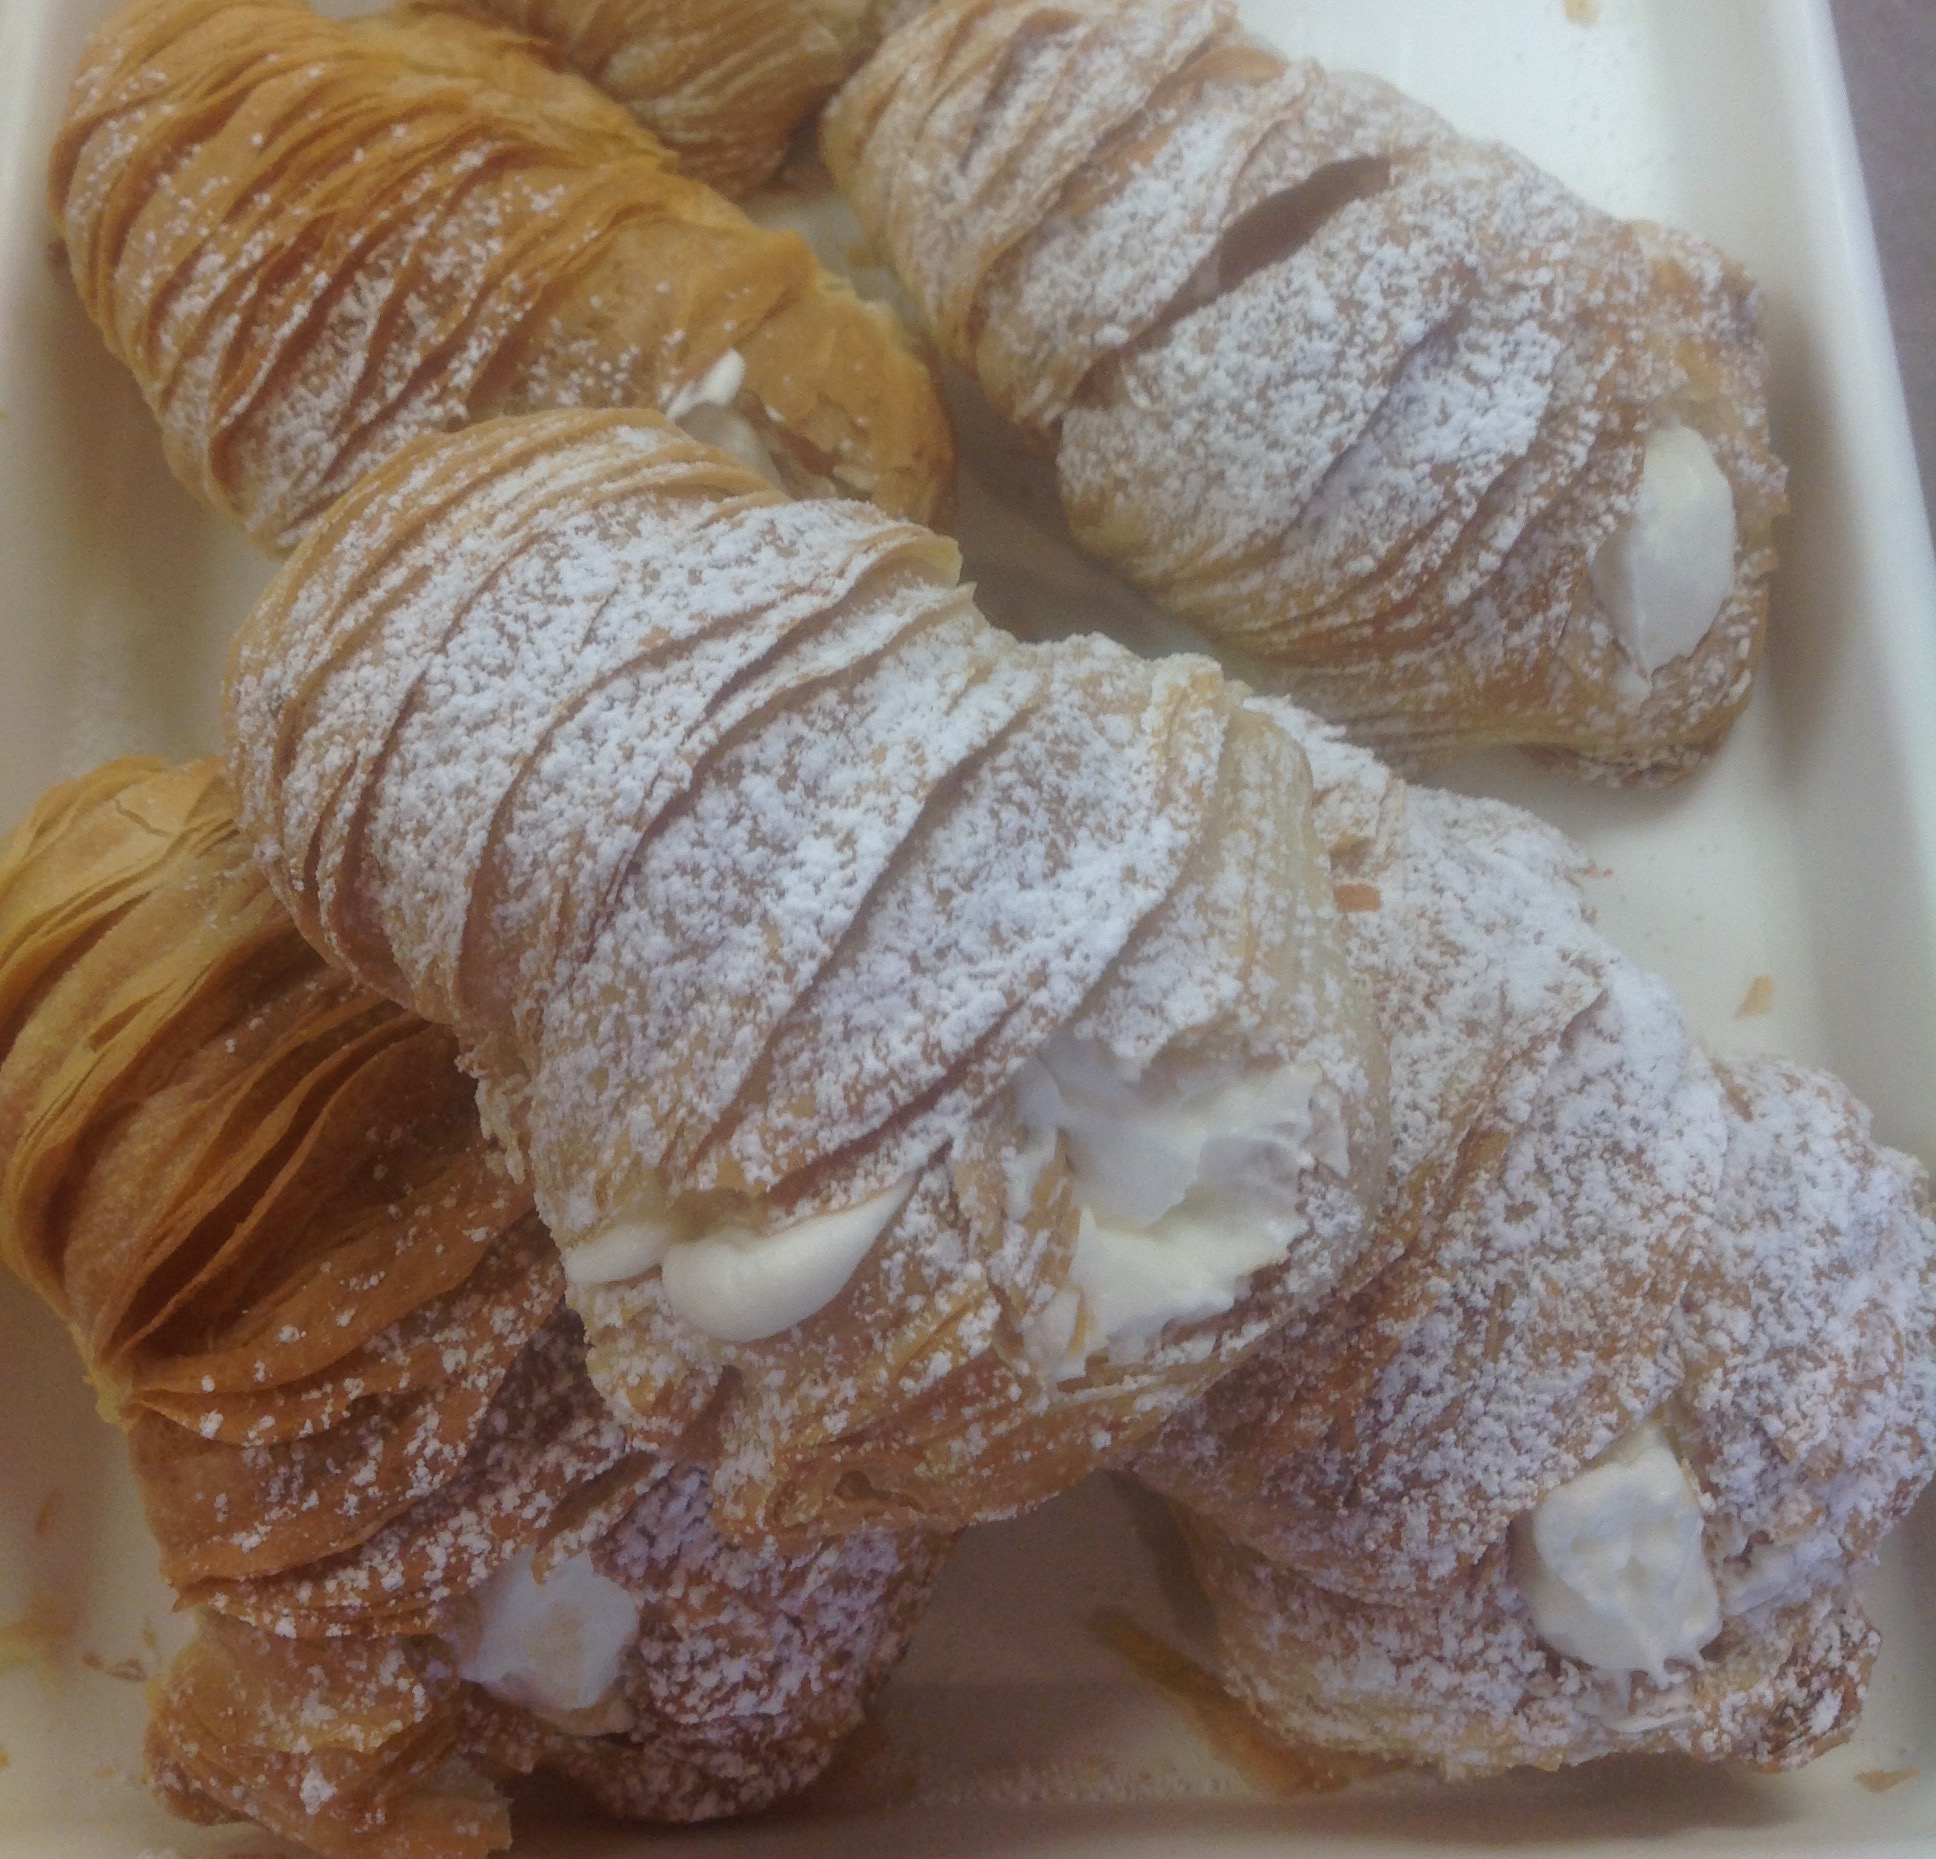 Lobster Tails Pastries at Dolce and Biscotti Italian Bakery